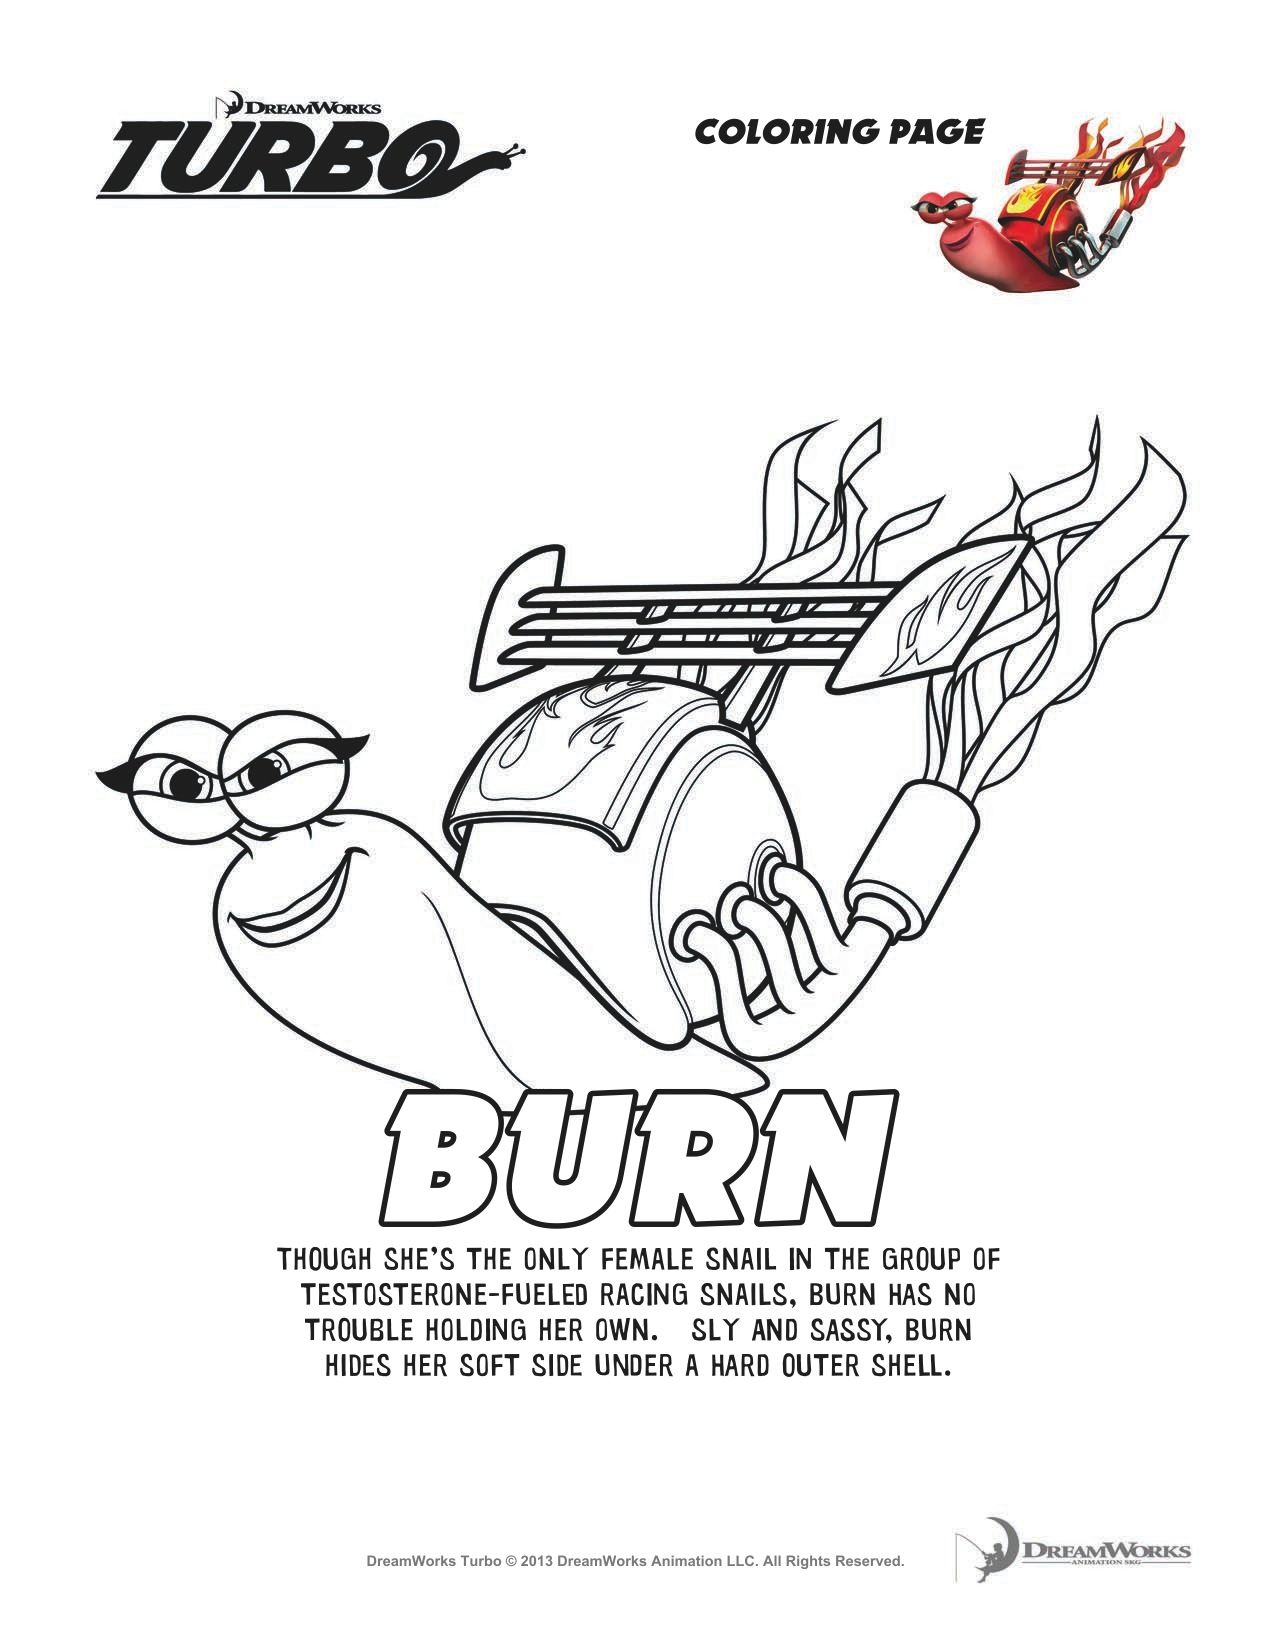 Turbo Burn Coloring Page Coloring Pages Cool Coloring Pages